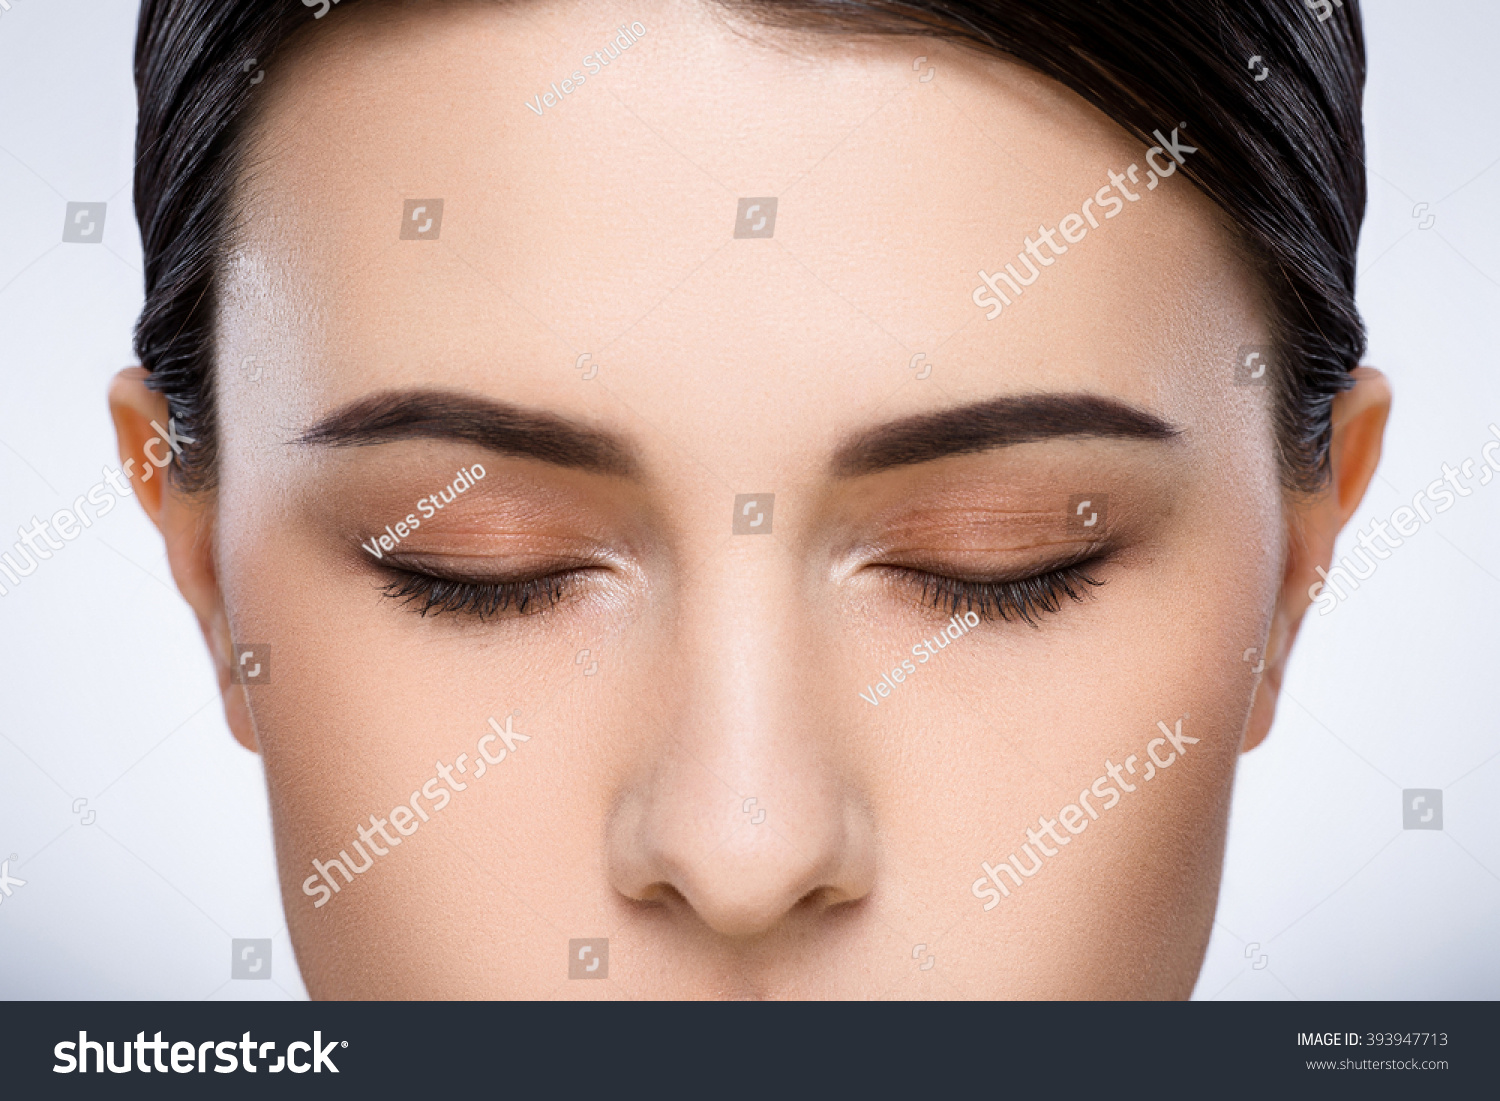 A Close Up Portrait Of Girls Dark Eyebrows Dark Hair And Light